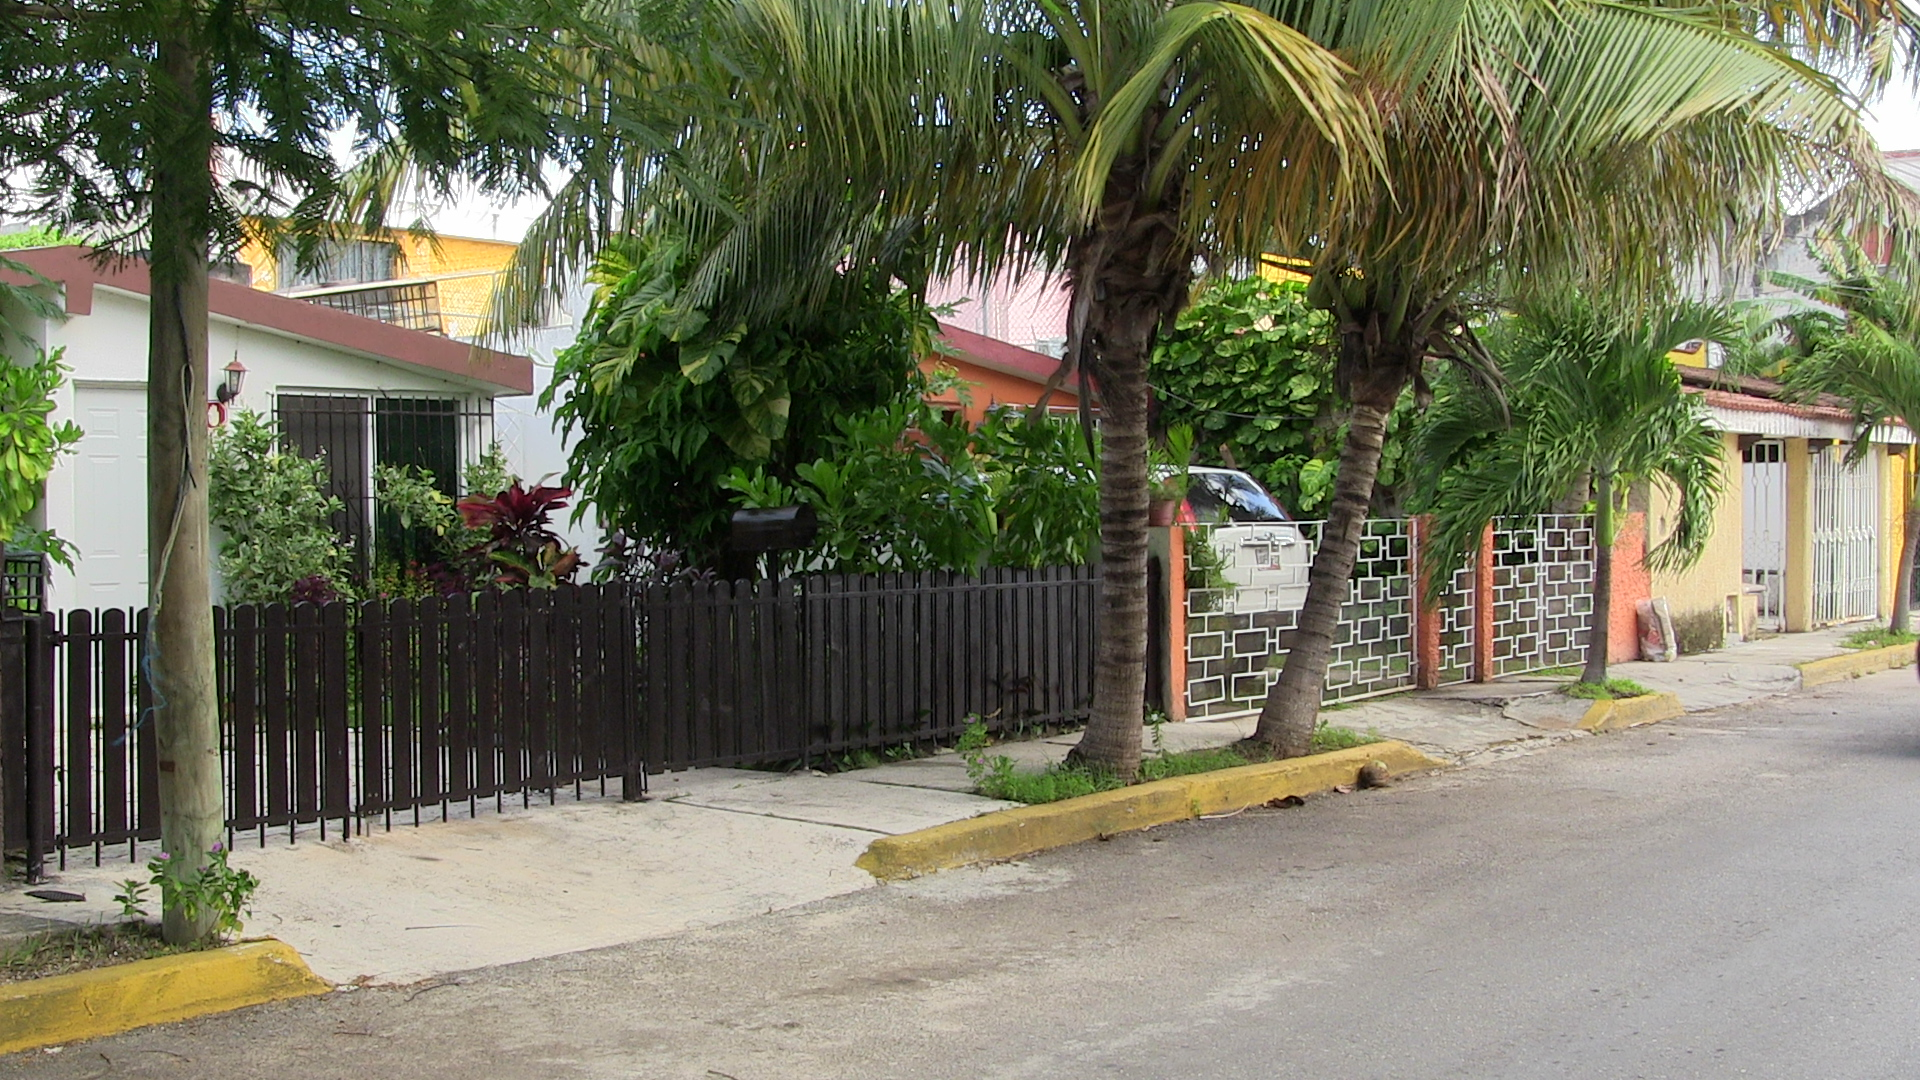 Local neighborhood in Cancun